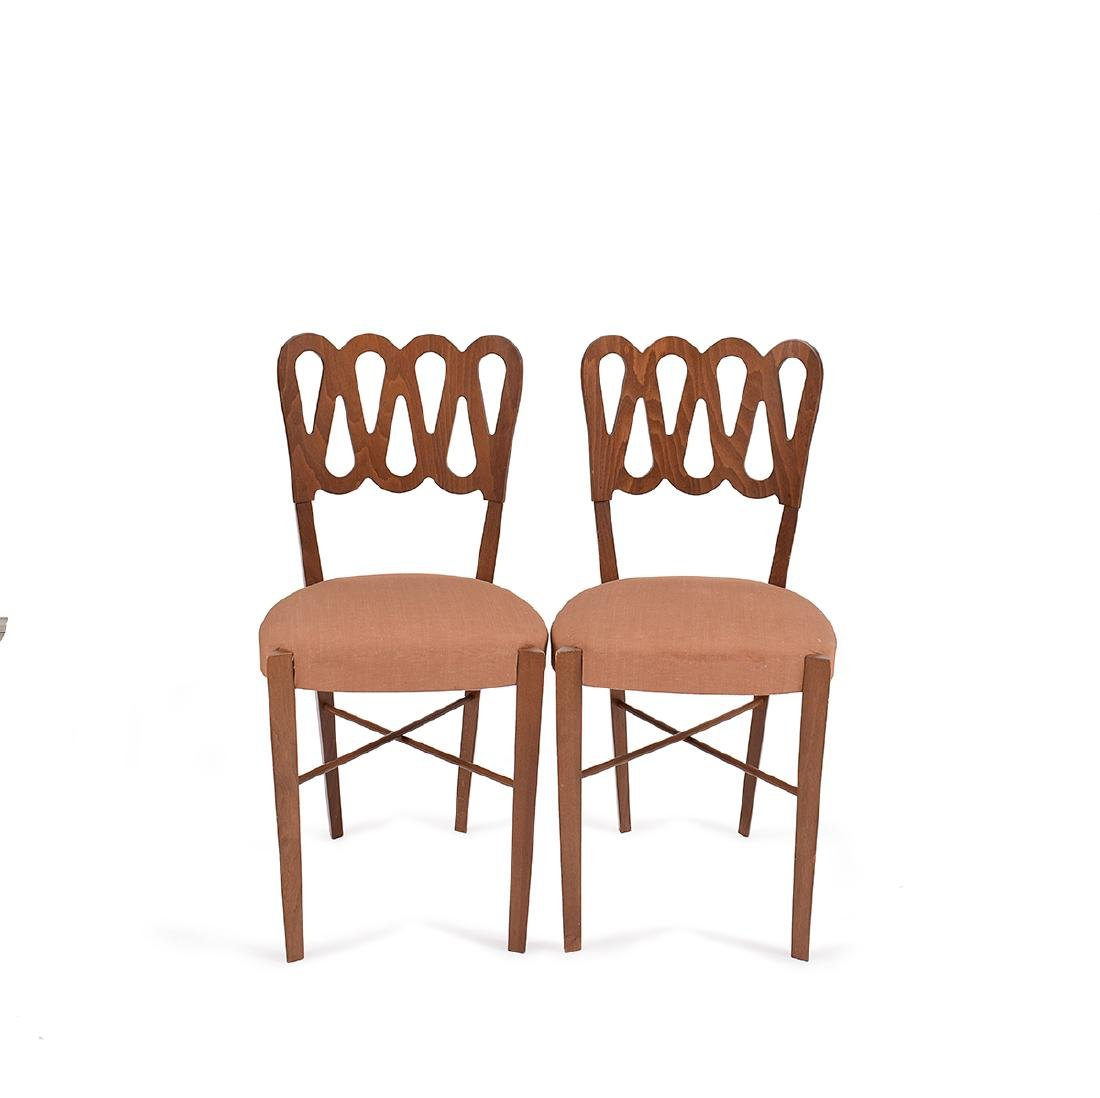 A pair of walnut armchairs, Gio Ponti for Montina, 80's